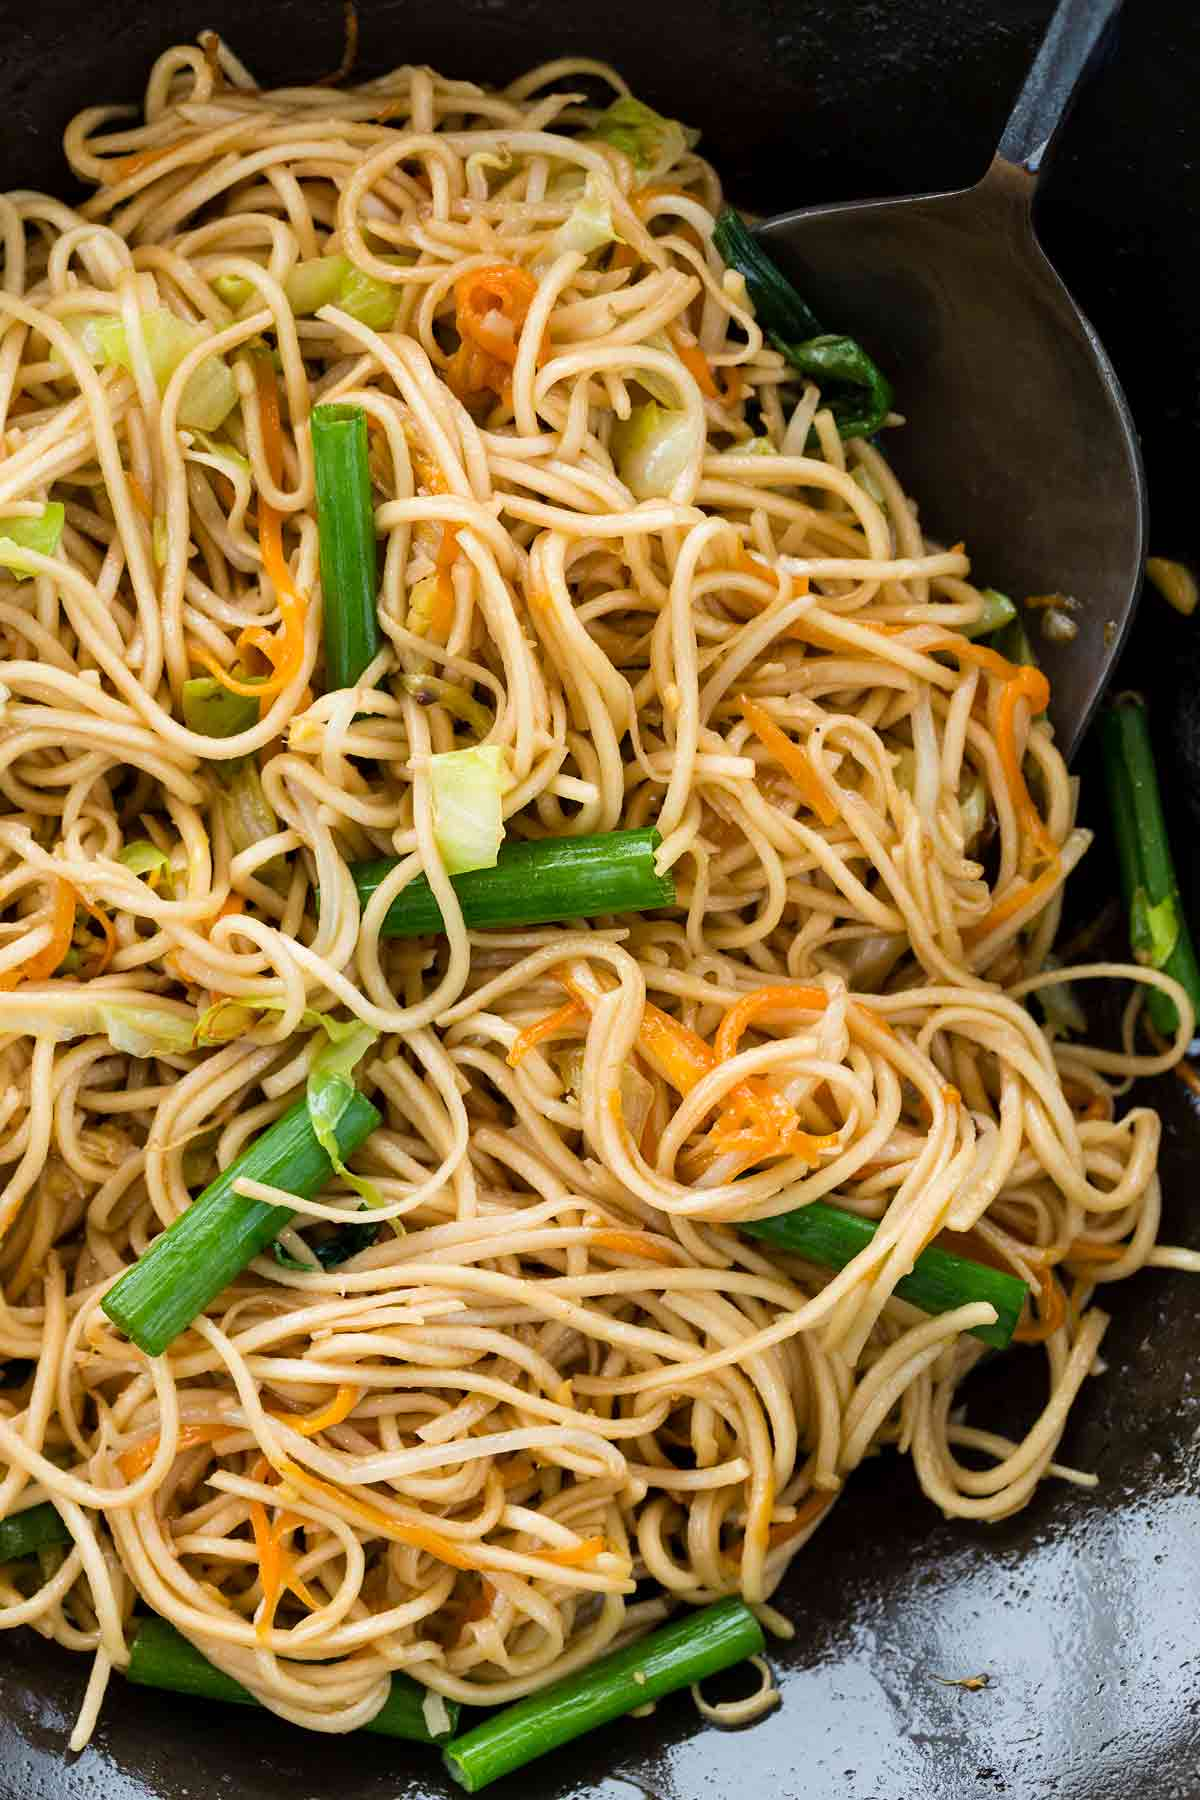 Spatula moving around chow mein noodles in a wok